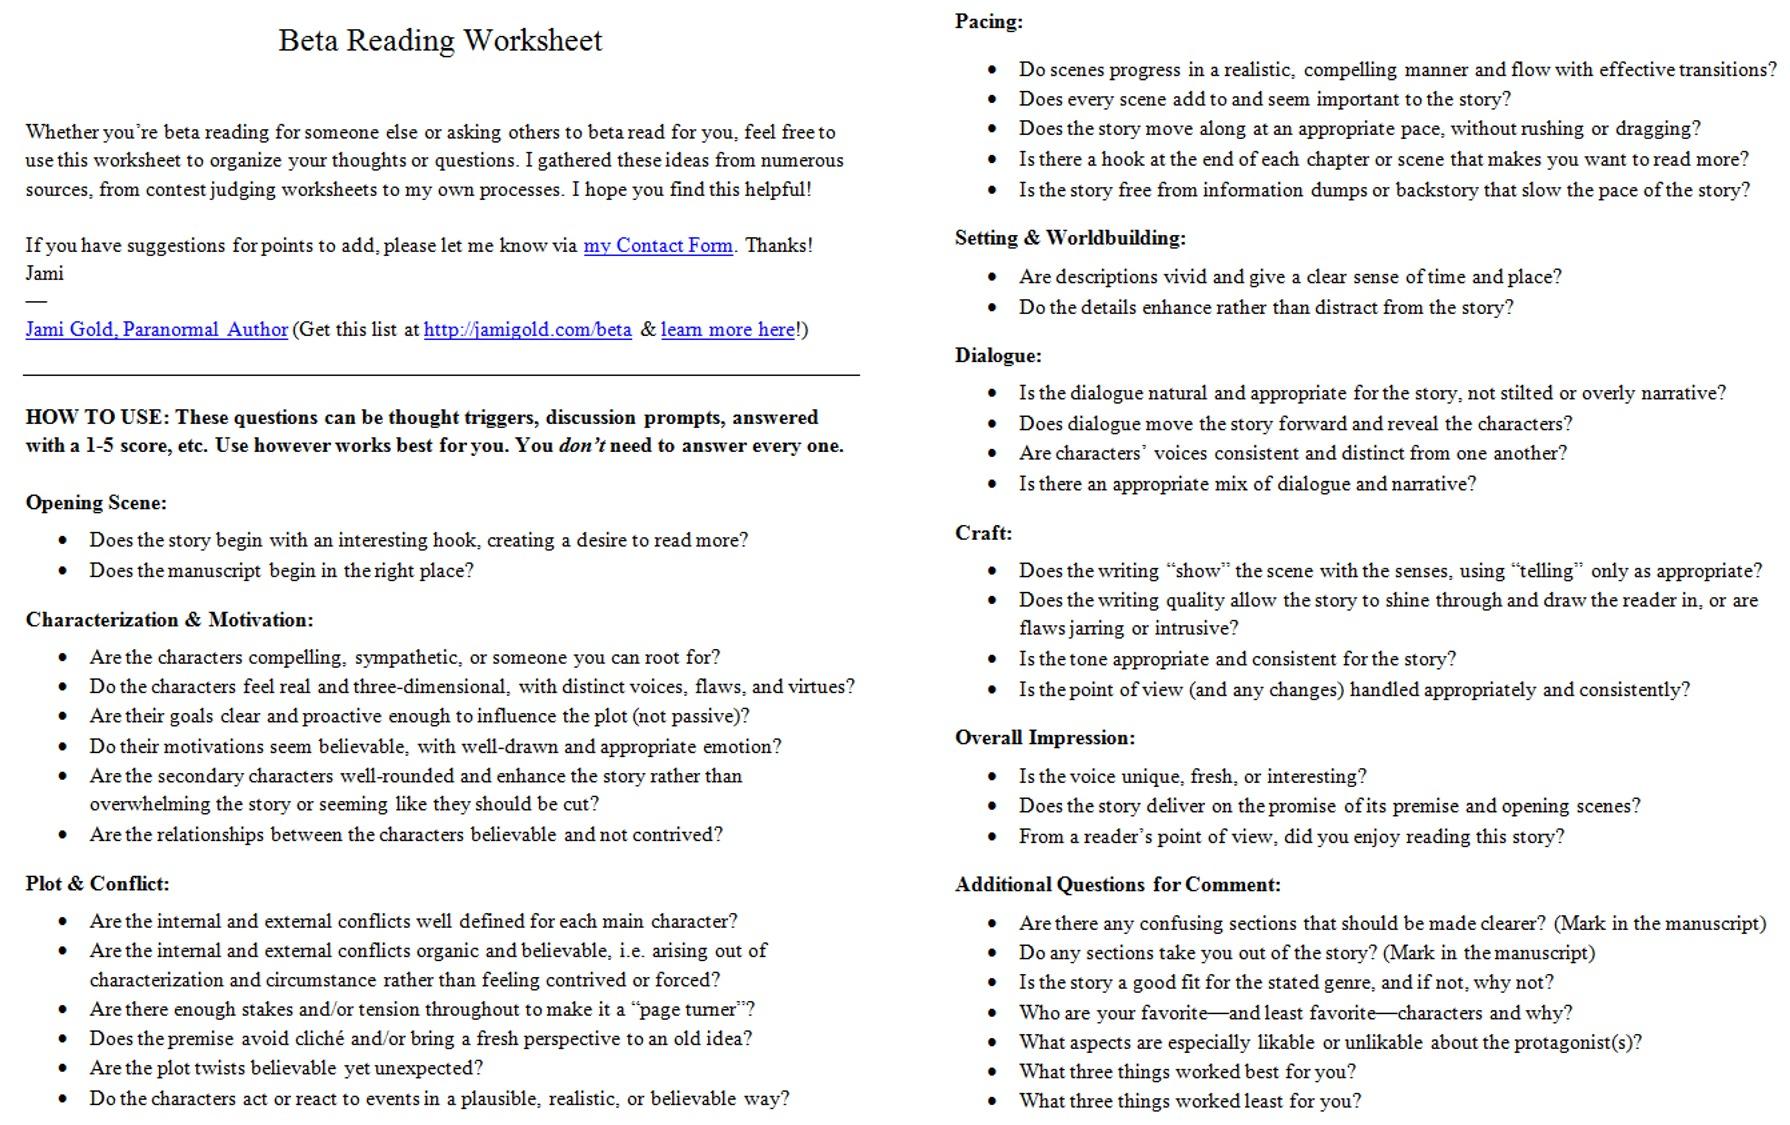 Aldiablosus  Remarkable Worksheets For Writers  Jami Gold Paranormal Author With Inspiring Screen Shot Of The Twopage Beta Reading Worksheet With Attractive Forces Ks Worksheet Also Maths Word Problems Year  Worksheets In Addition Printable Kindergarten Addition Worksheets And Free Sentence Correction Worksheets As Well As Super Kids Worksheet Additionally Kids Math Worksheets St Grade From Jamigoldcom With Aldiablosus  Inspiring Worksheets For Writers  Jami Gold Paranormal Author With Attractive Screen Shot Of The Twopage Beta Reading Worksheet And Remarkable Forces Ks Worksheet Also Maths Word Problems Year  Worksheets In Addition Printable Kindergarten Addition Worksheets From Jamigoldcom